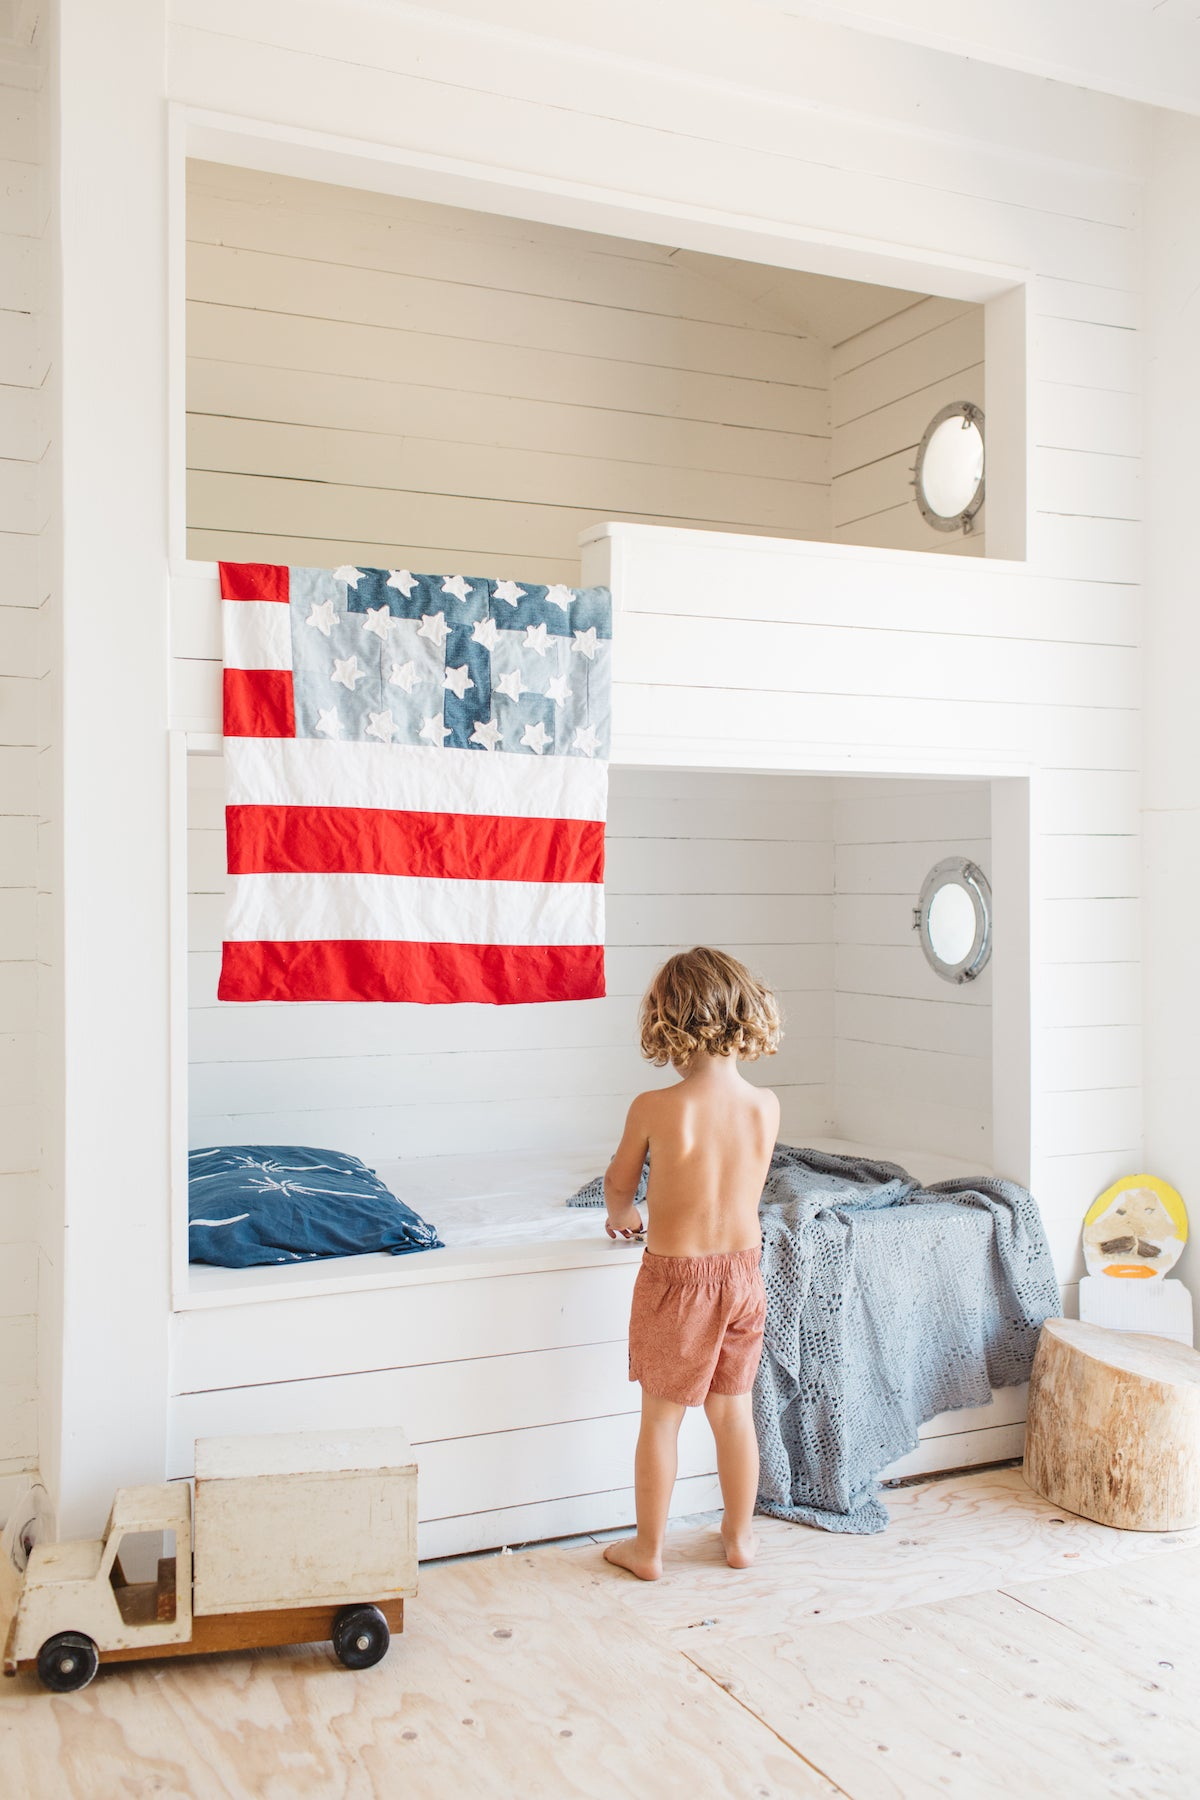 Land of Liberty Flag + Floor Pillow | Old Glory Red